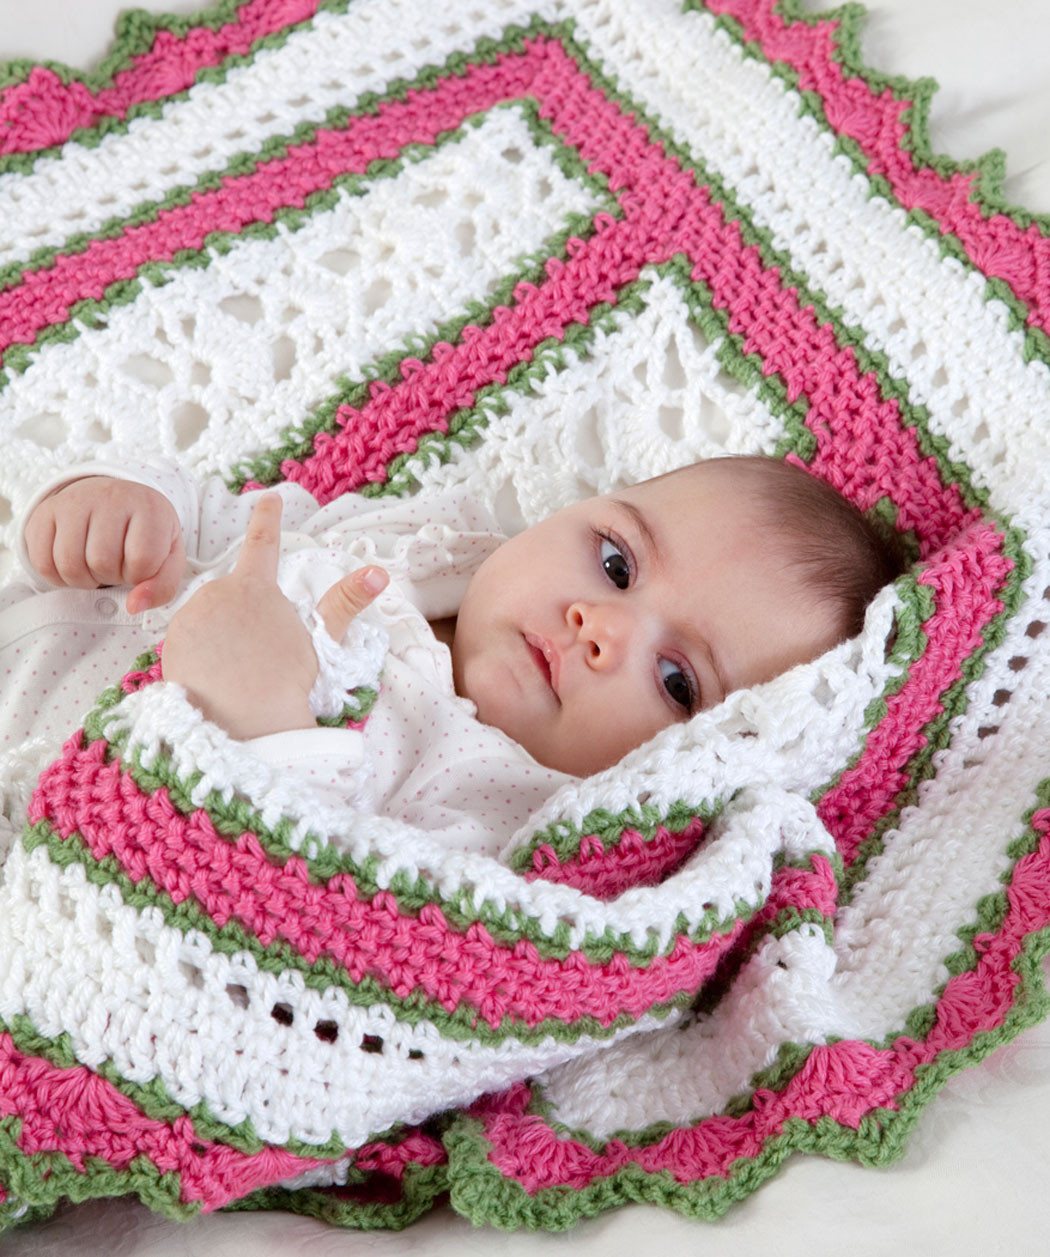 Baby Boy Crochet Blanket Patterns Best Of 10 Beautiful Baby Blanket Free Patterns Of Baby Boy Crochet Blanket Patterns New Beautiful Baby Boy Blanket Crochet Pattern for Pram